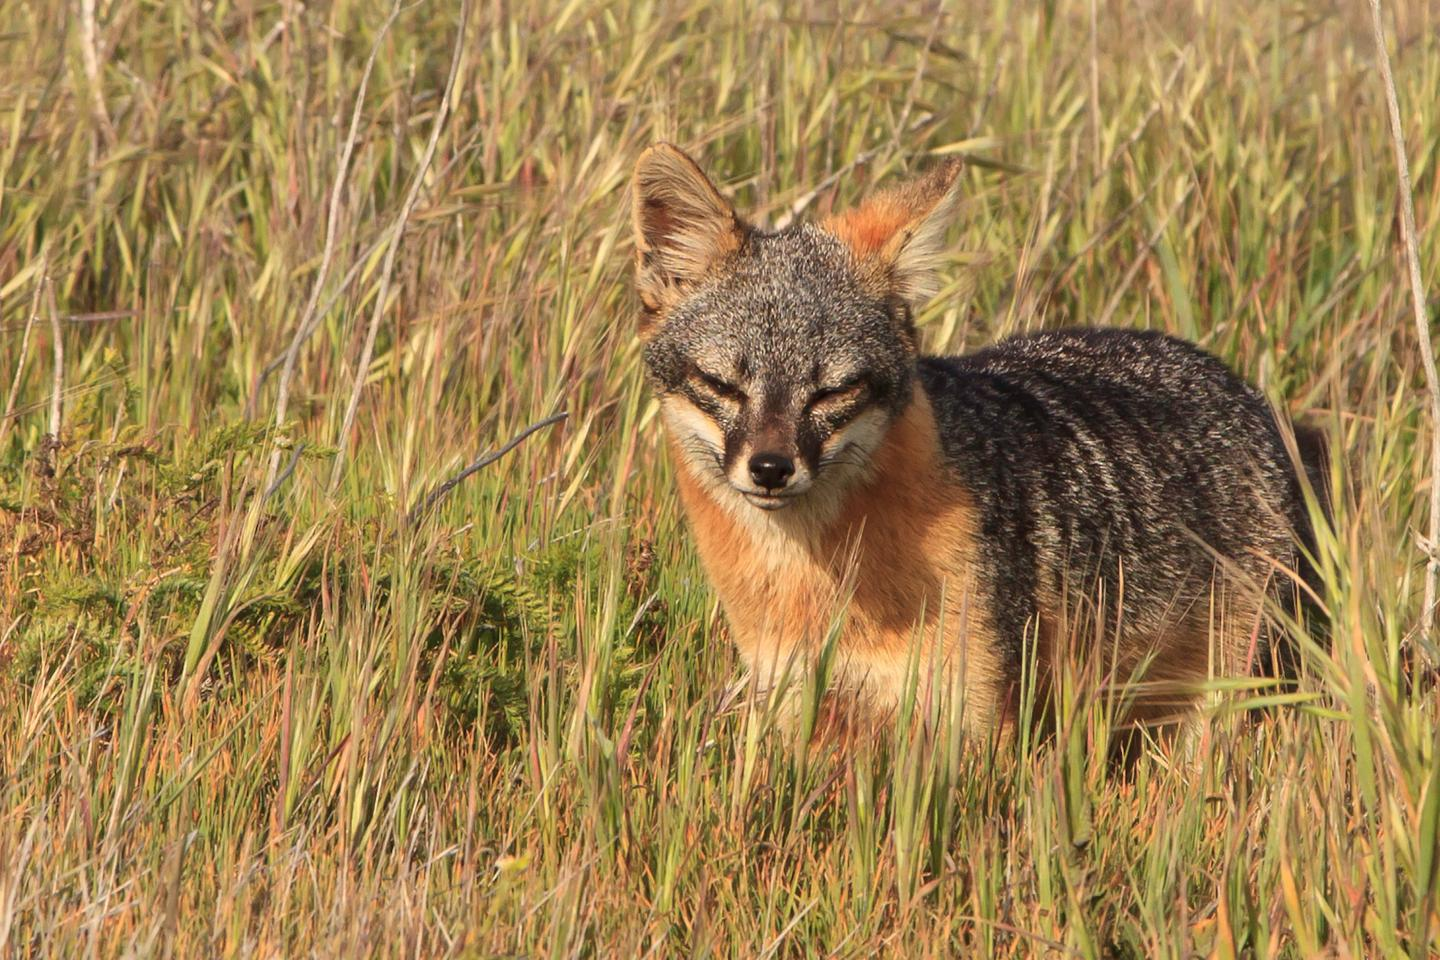 Island Fox by Tim HaufIsland Fox, Santa Cruz Island: Thousands of years of isolation in a unique island environment has resulted in the development of the endemic island fox, a dwarf form of the mainland gray fox.